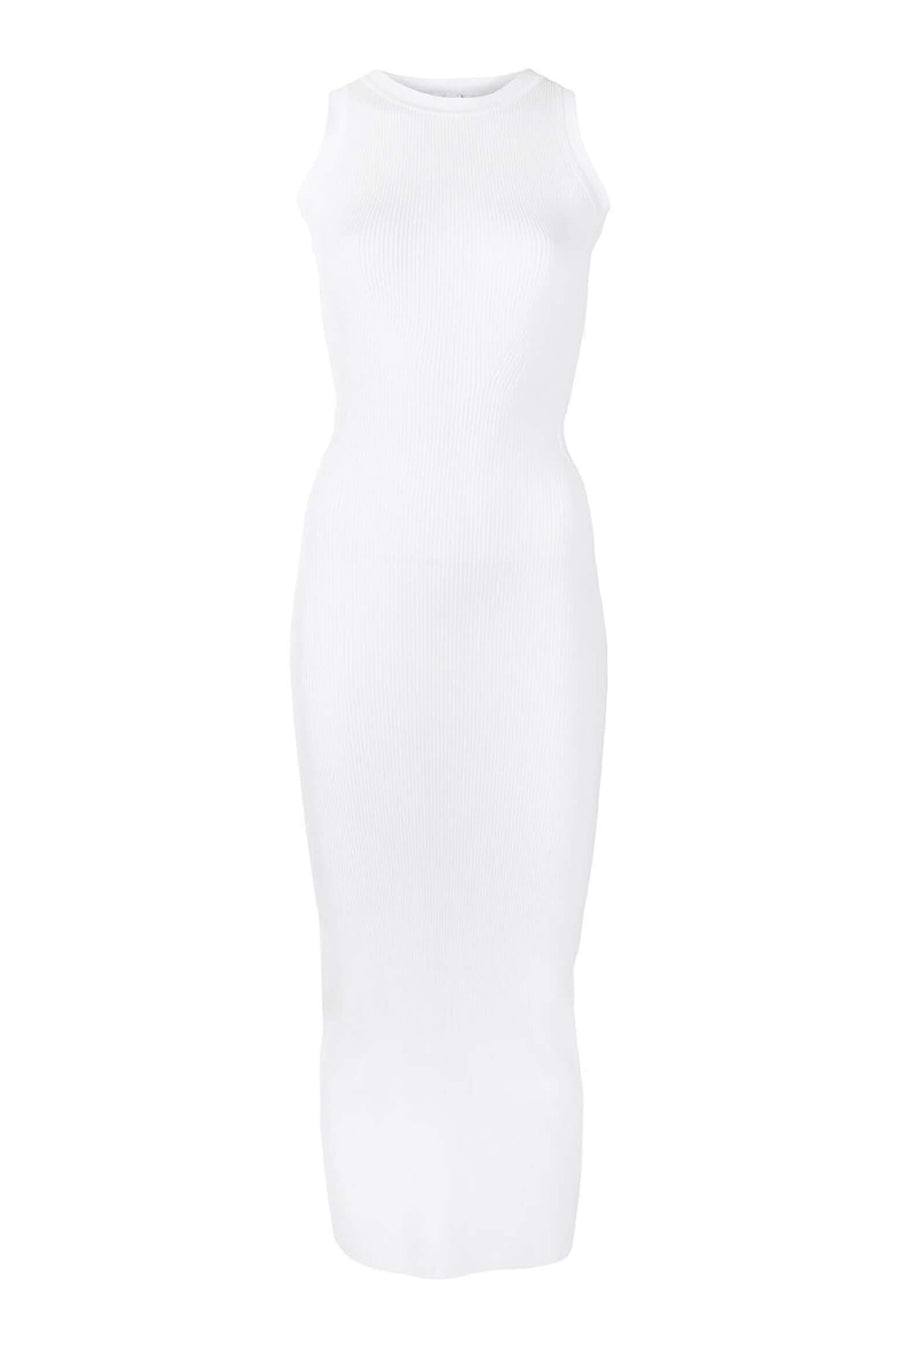 Sir The Label Celle Cut Out Dress from The New Trend